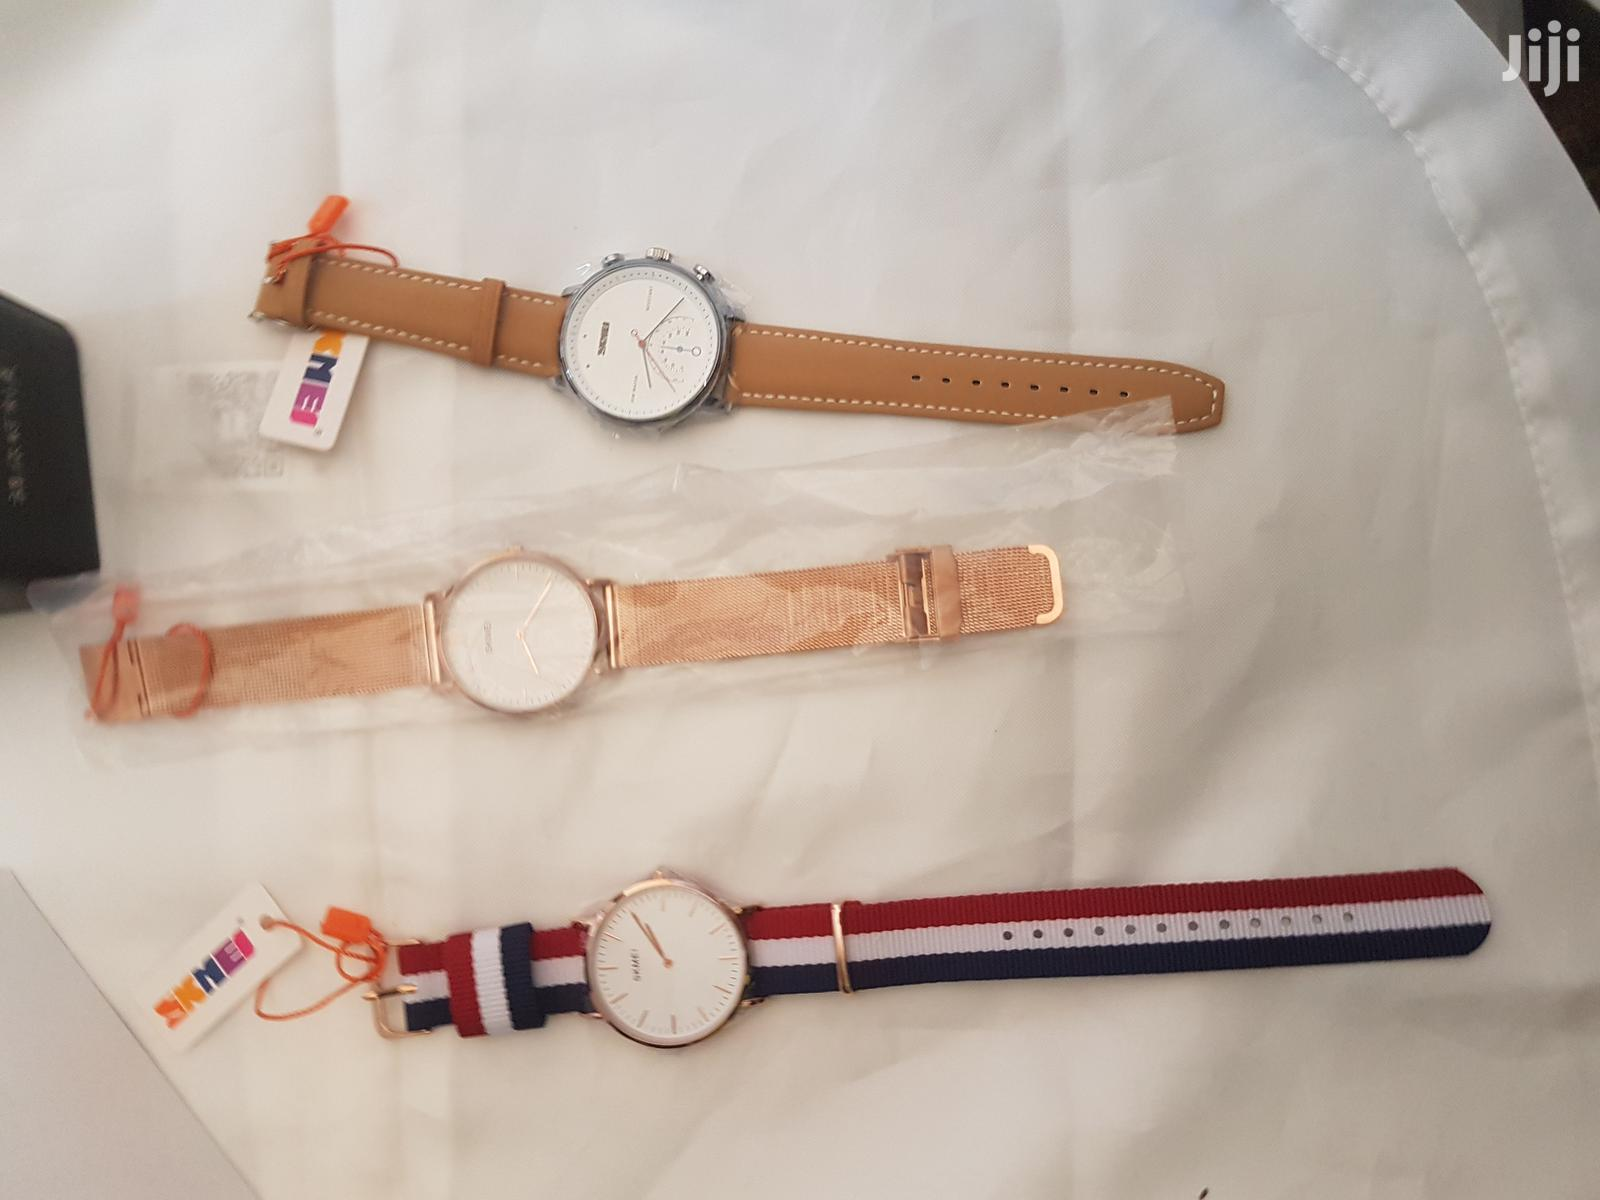 Archive: Brand New Original Skmei Watches.